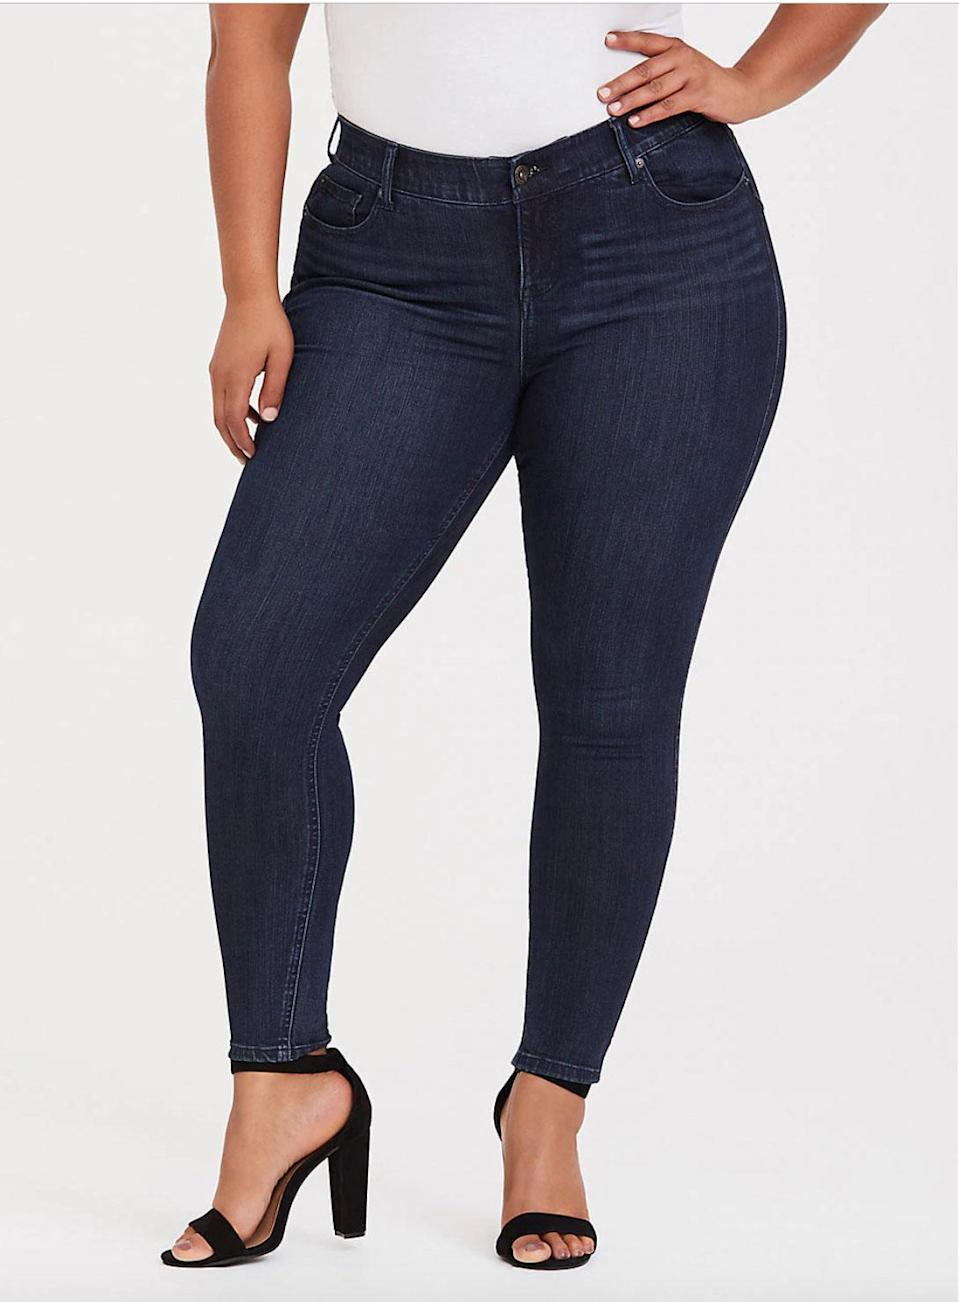 "<p><a href=""https://fave.co/2QEEzXv"" rel=""nofollow noopener"" target=""_blank"" data-ylk=""slk:Shop it:"" class=""link rapid-noclick-resp""><strong>Shop it:</strong> </a>Torrid Premium Stretch Bombshell Skinny Jean in Dark Wash, $75, <a href=""https://fave.co/2QEEzXv"" rel=""nofollow noopener"" target=""_blank"" data-ylk=""slk:torrid.com"" class=""link rapid-noclick-resp"">torrid.com</a> </p>"